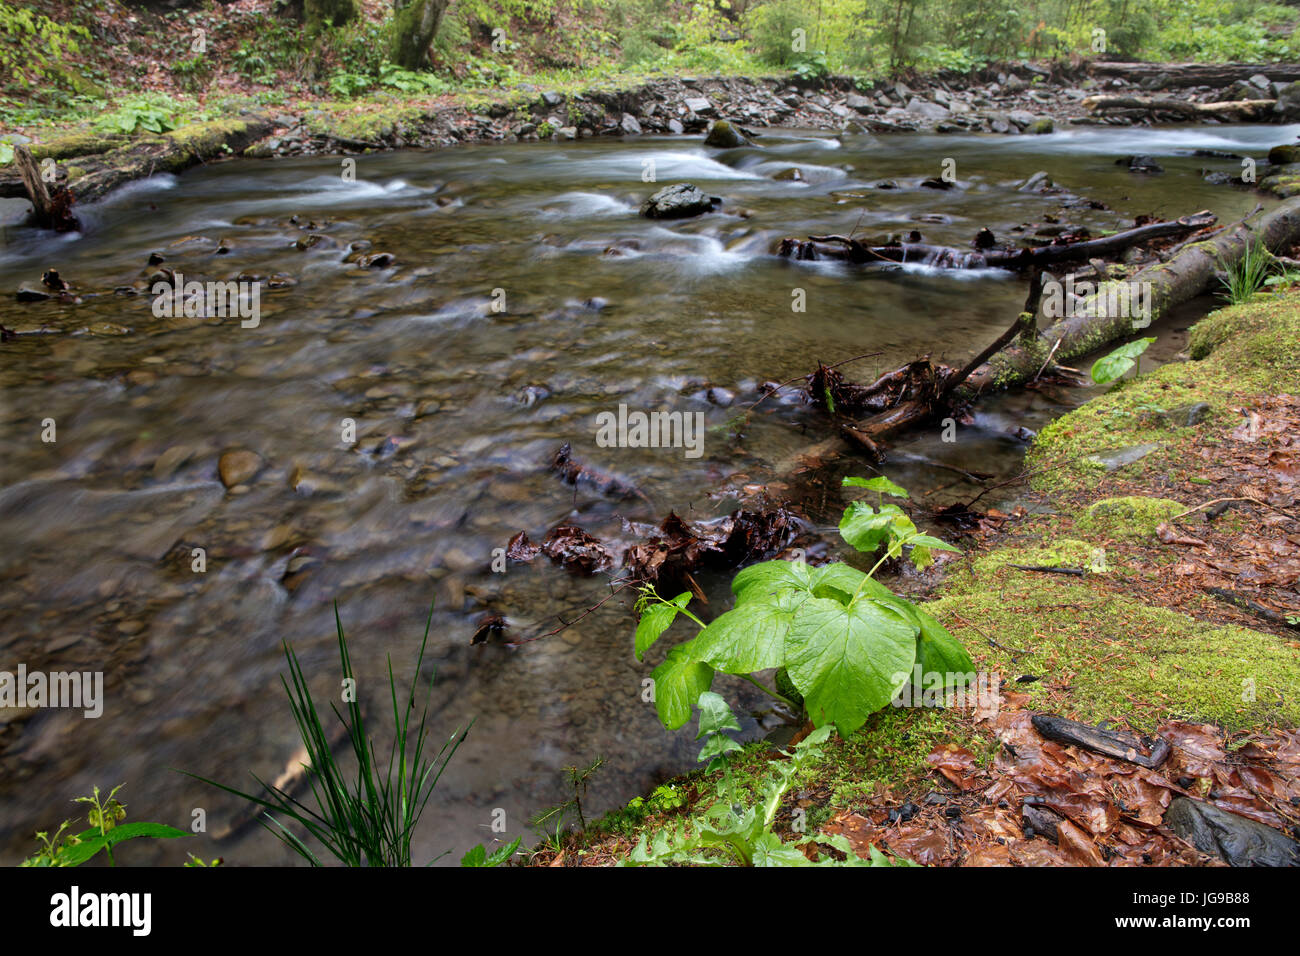 In the forest, at the water's edge, a small young plant grows on the shore of swift mountain river. - Stock Image